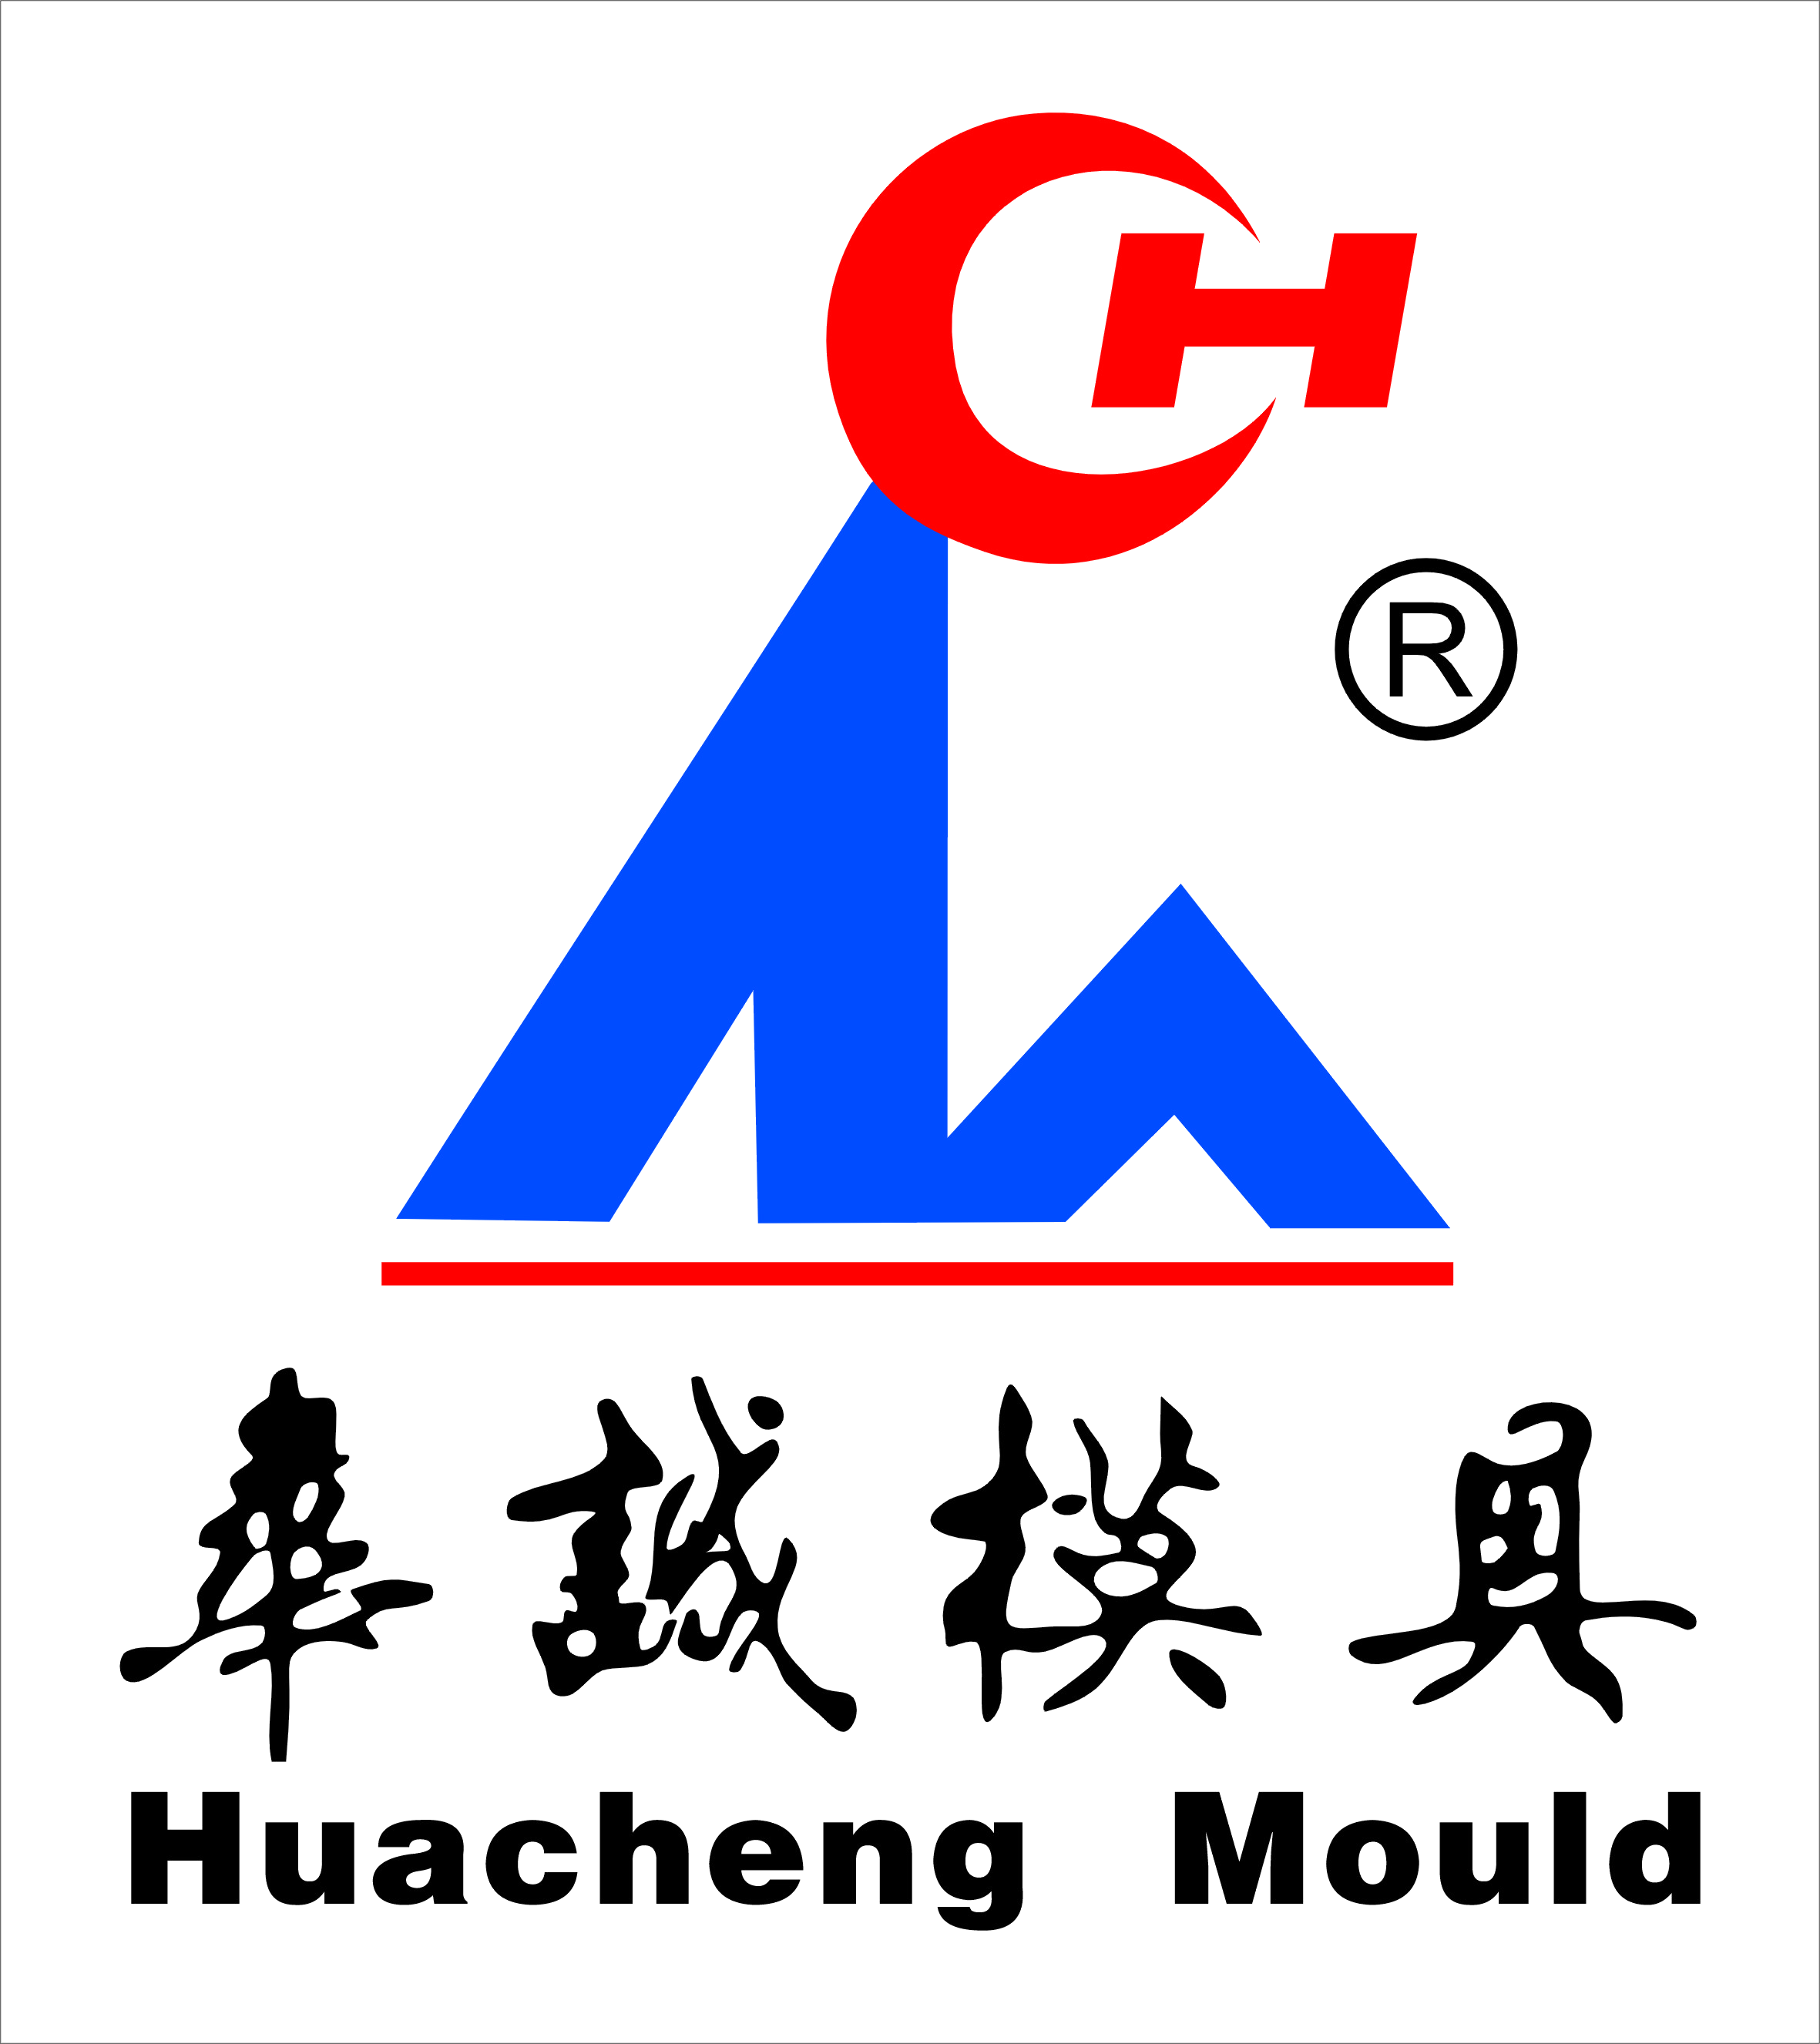 Taizhou Huacheng Mould Co., Ltd